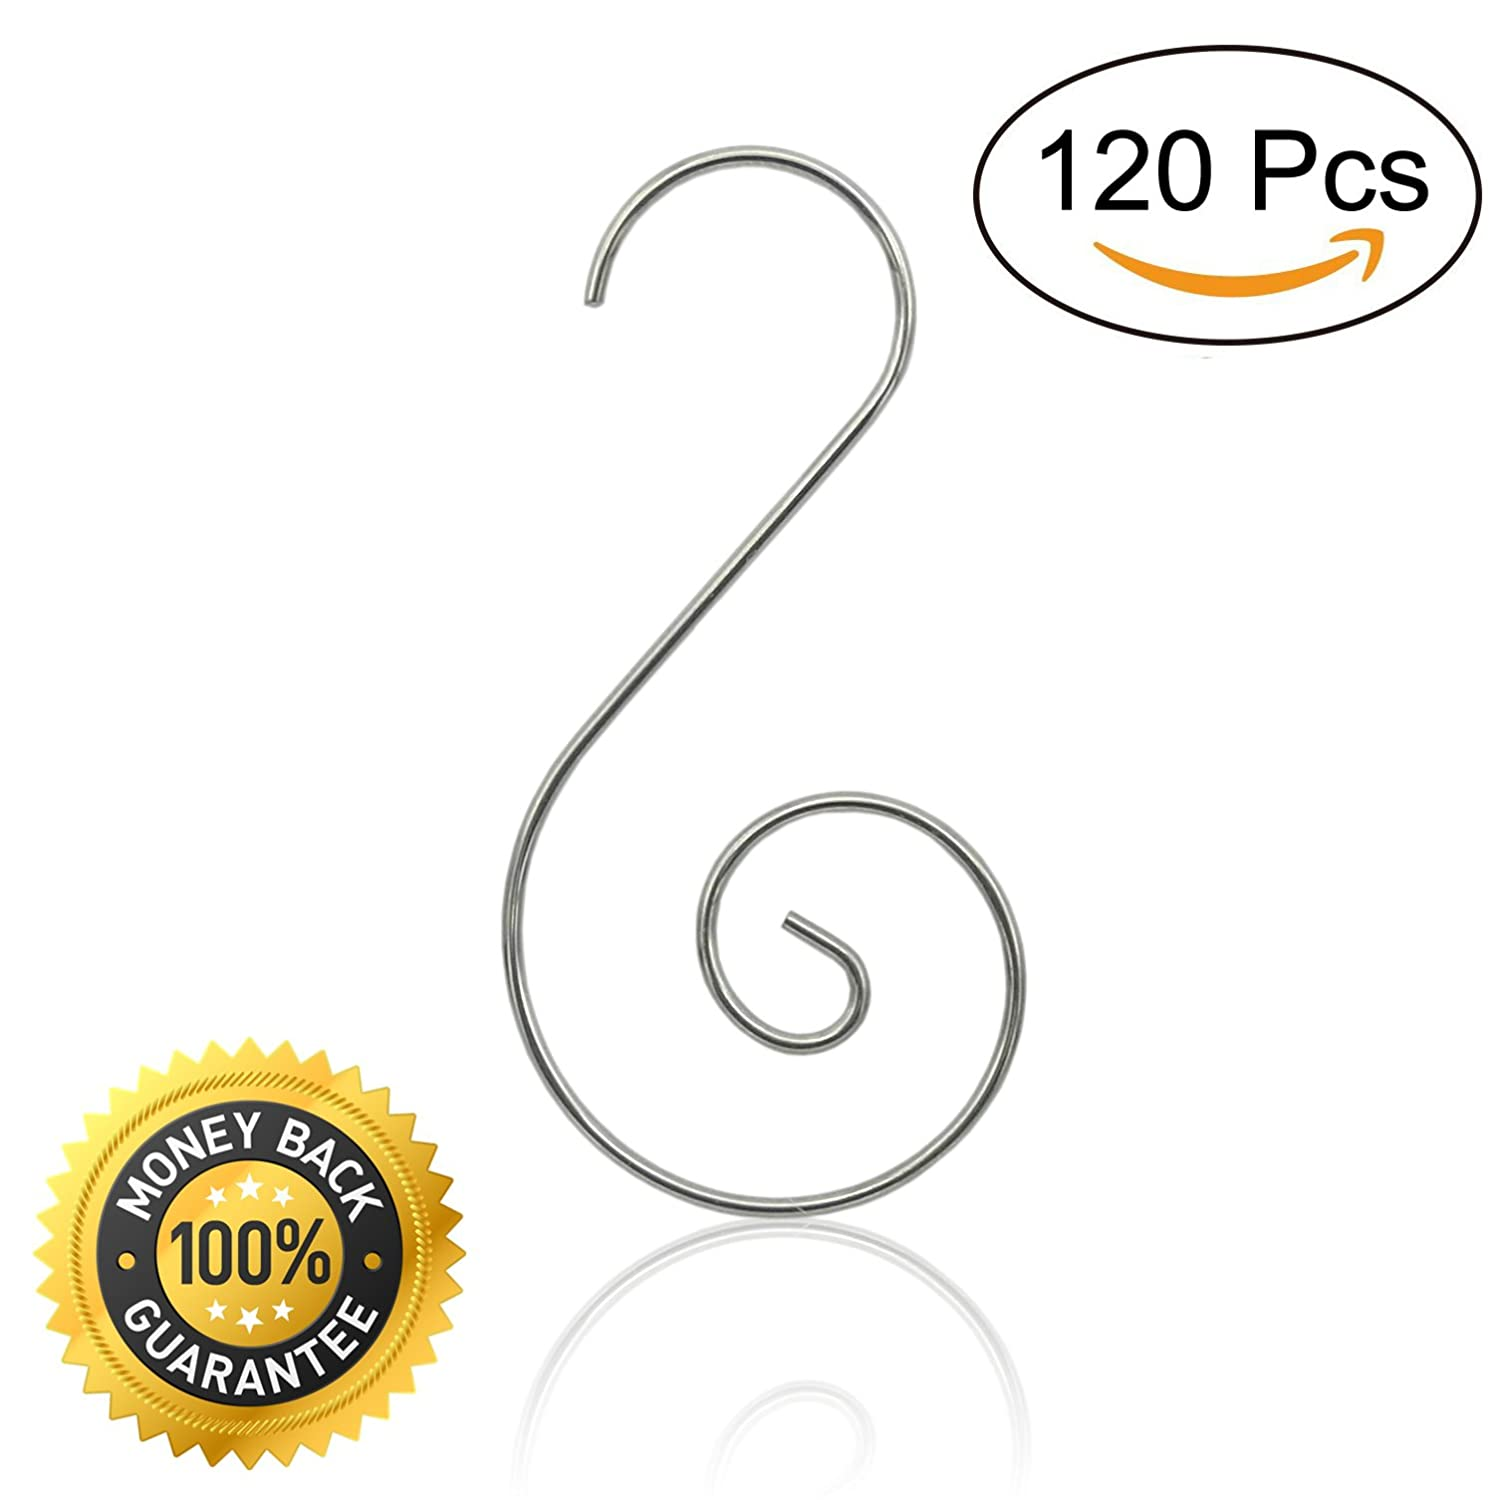 120 Pcs Christmas Ornaments Hooks Christmas Tree Hanger Great for Christmas Tree Decoration - Silver Elicci